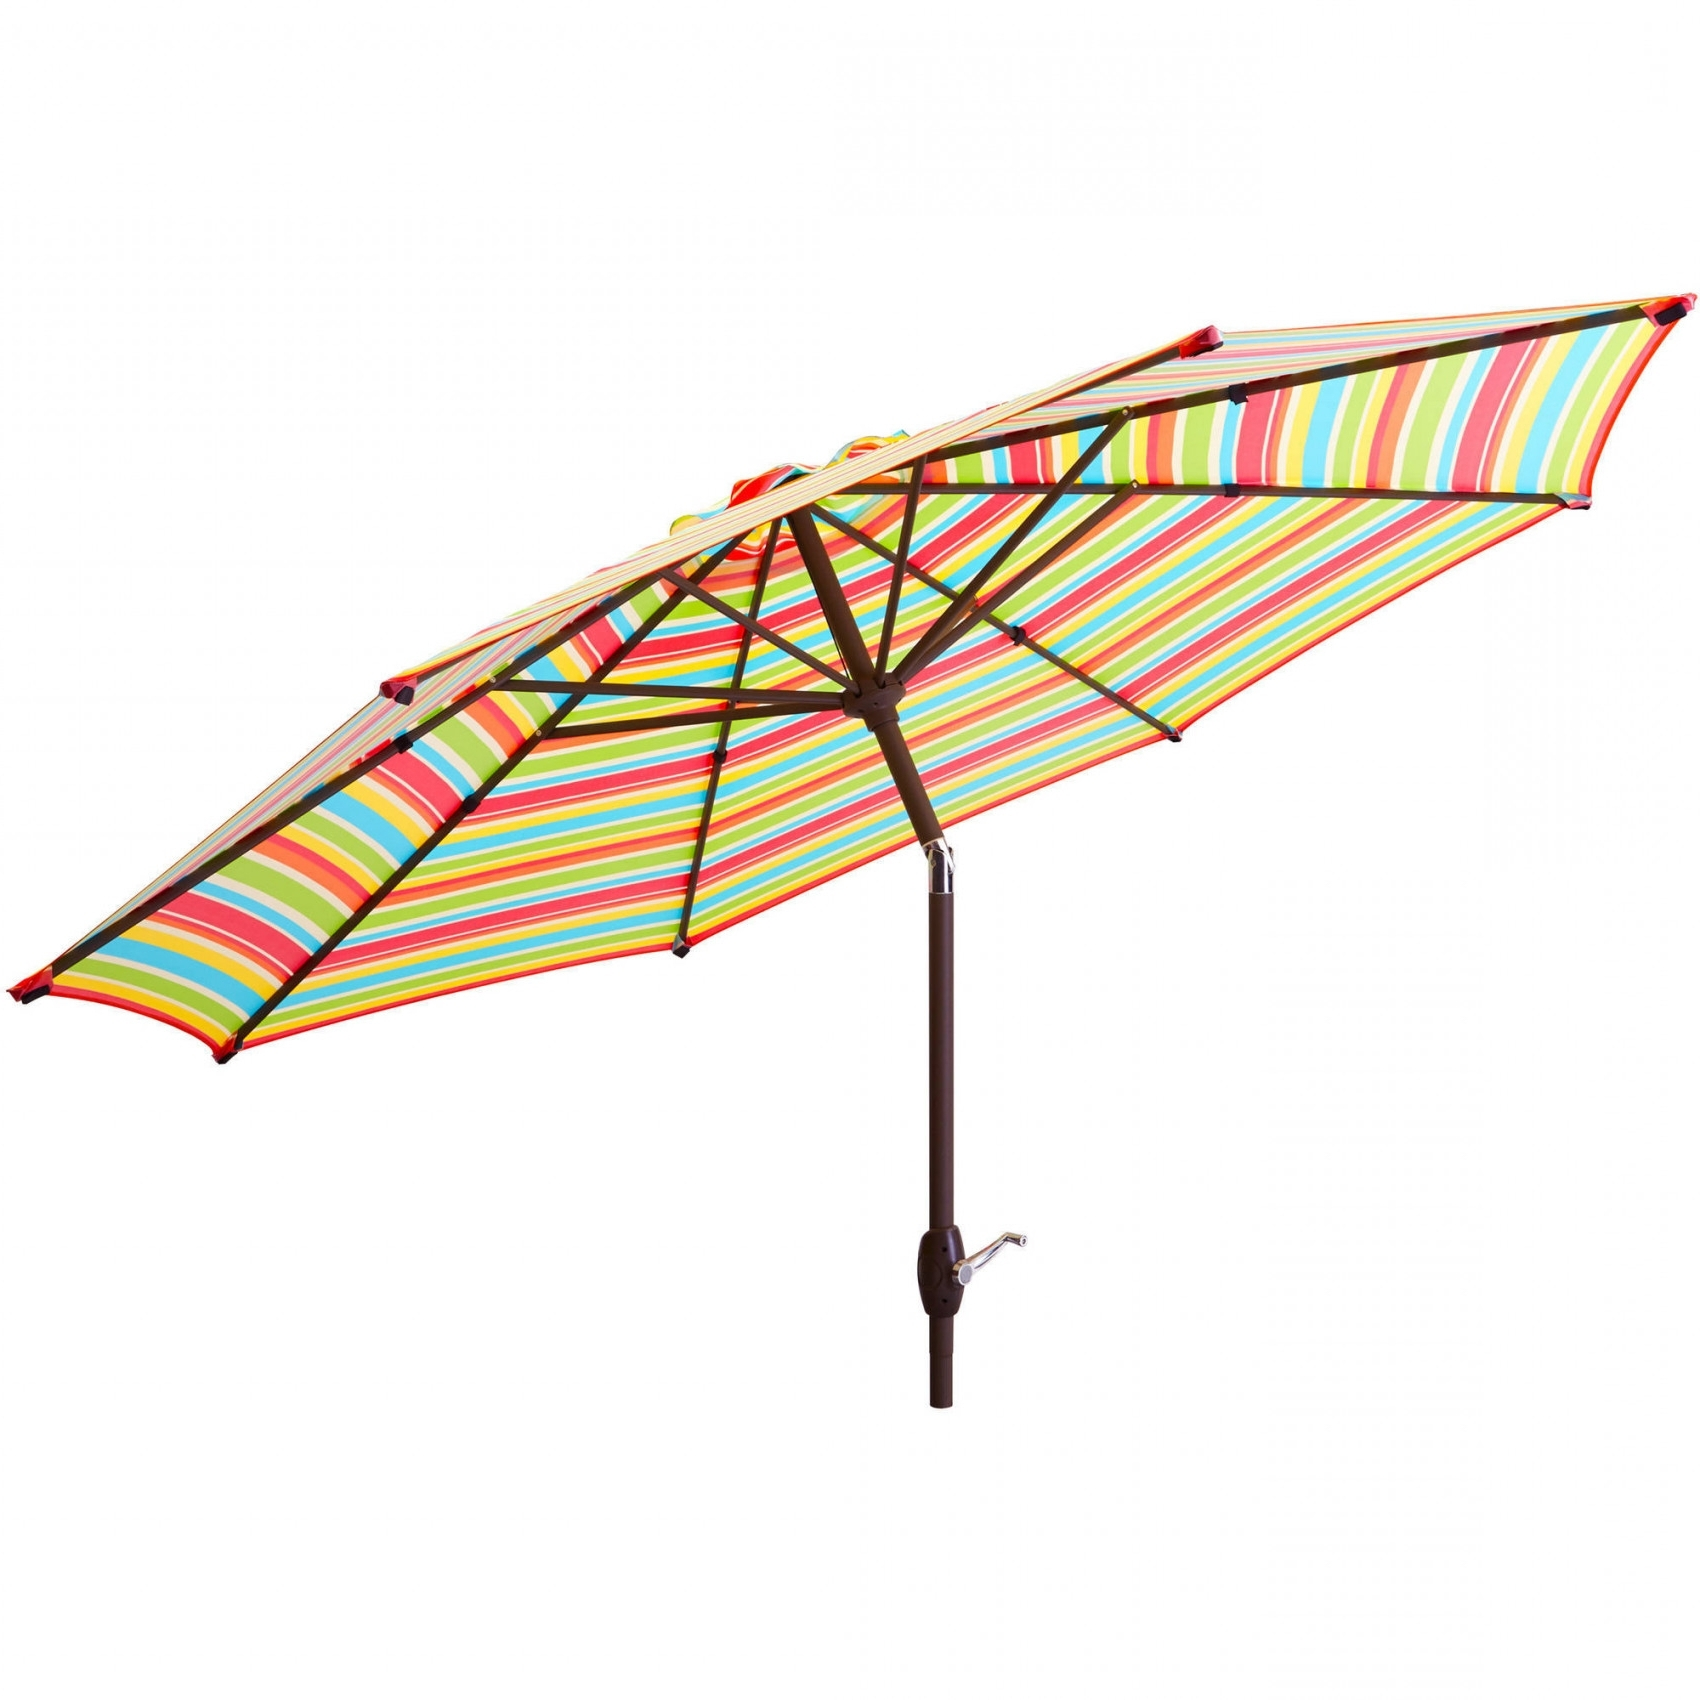 Walmart Patio Umbrellas Regarding Trendy Patio Umbrellas Walmart – Home Design Ideas (View 10 of 20)